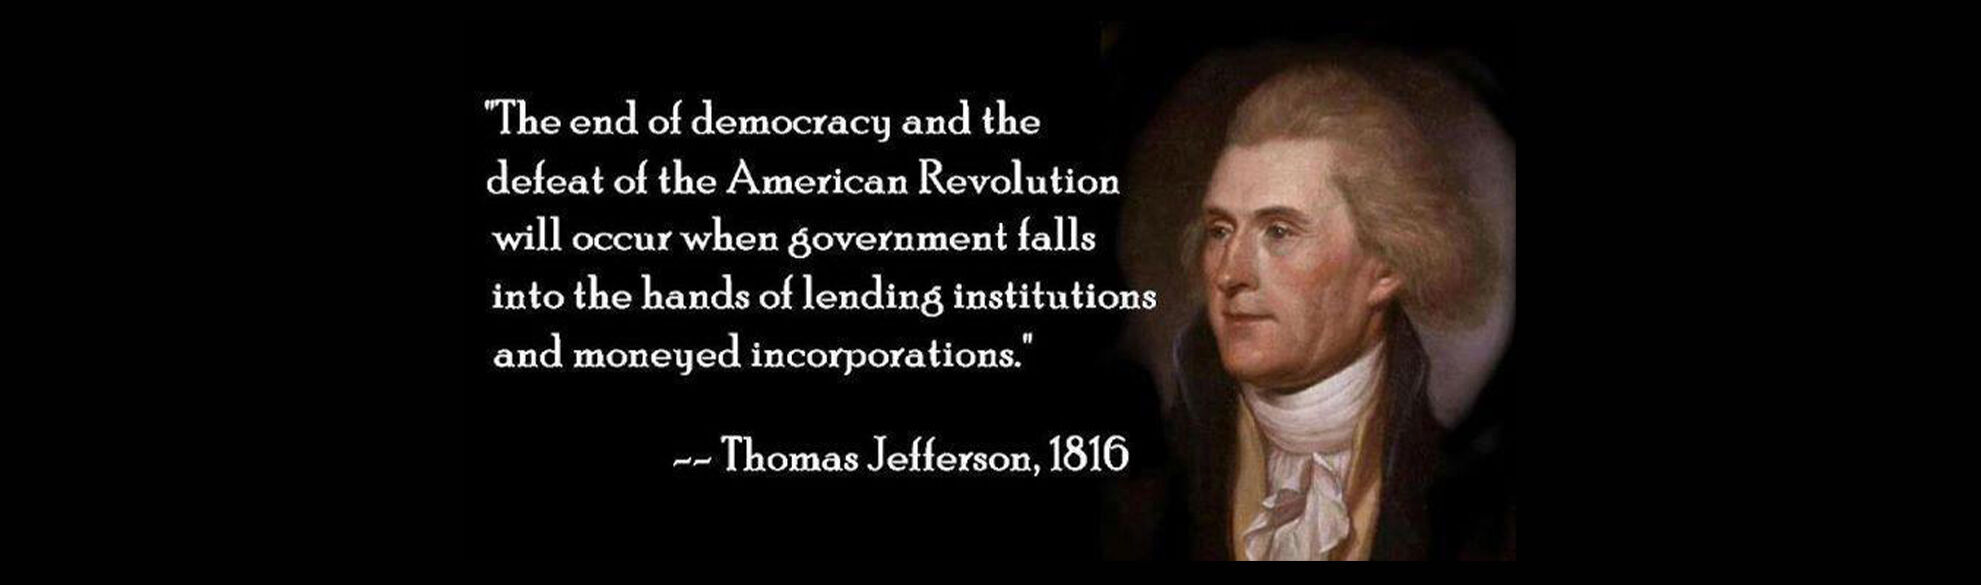 Absent Justice - Thomas Jefferson